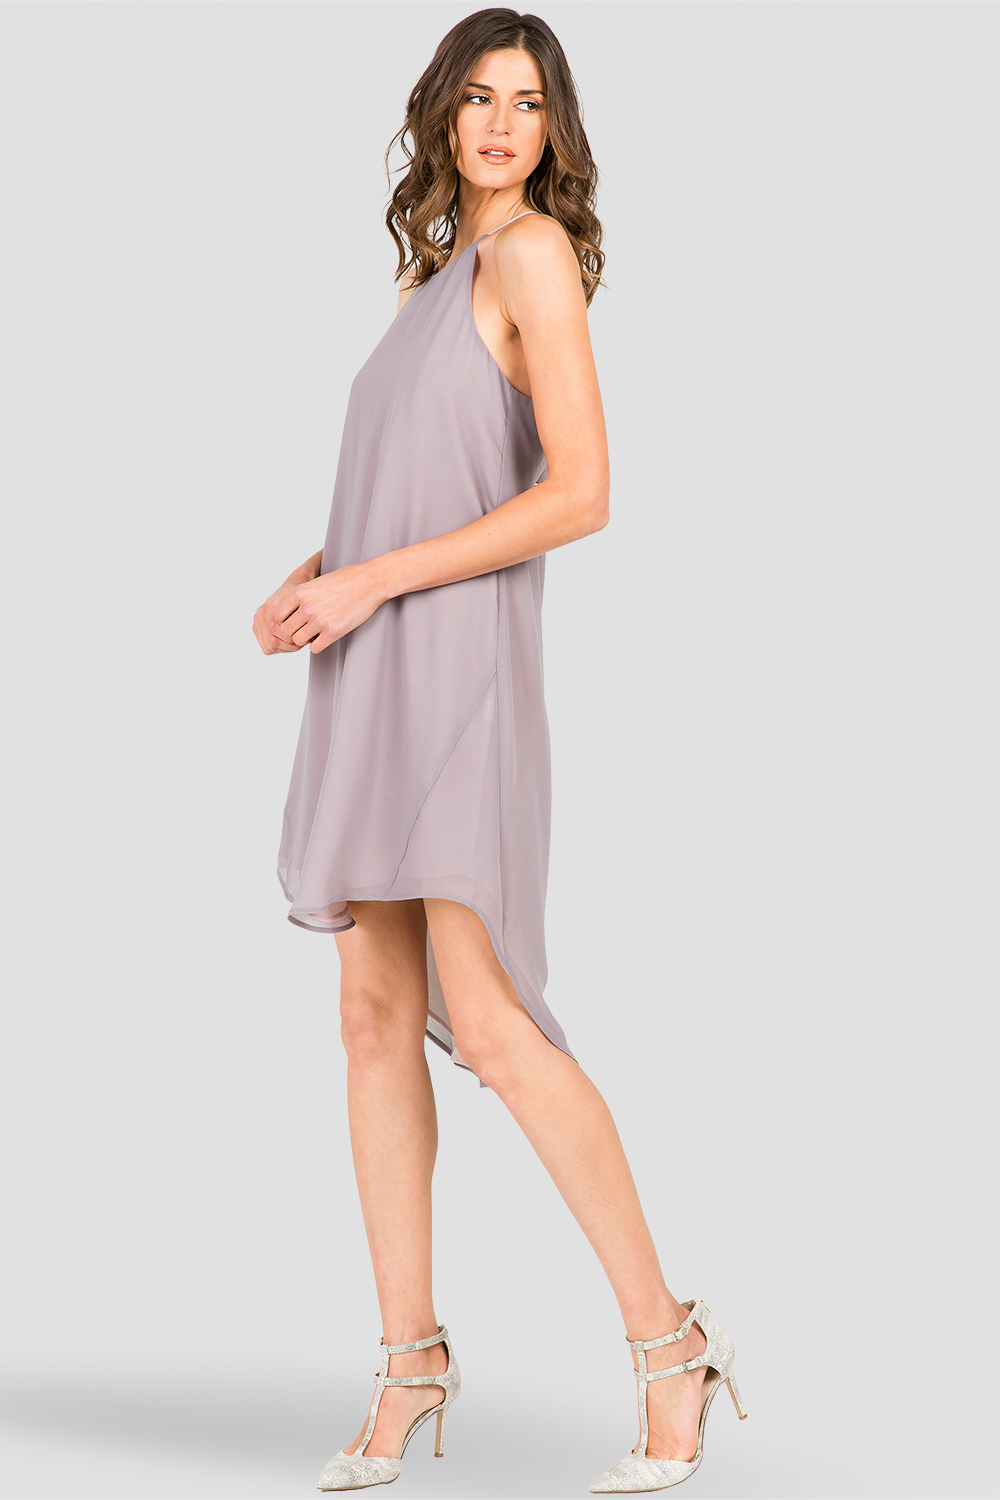 Ashley Racerback Spaghetti Strap High-Low Dress Smokey Grey And Mauve